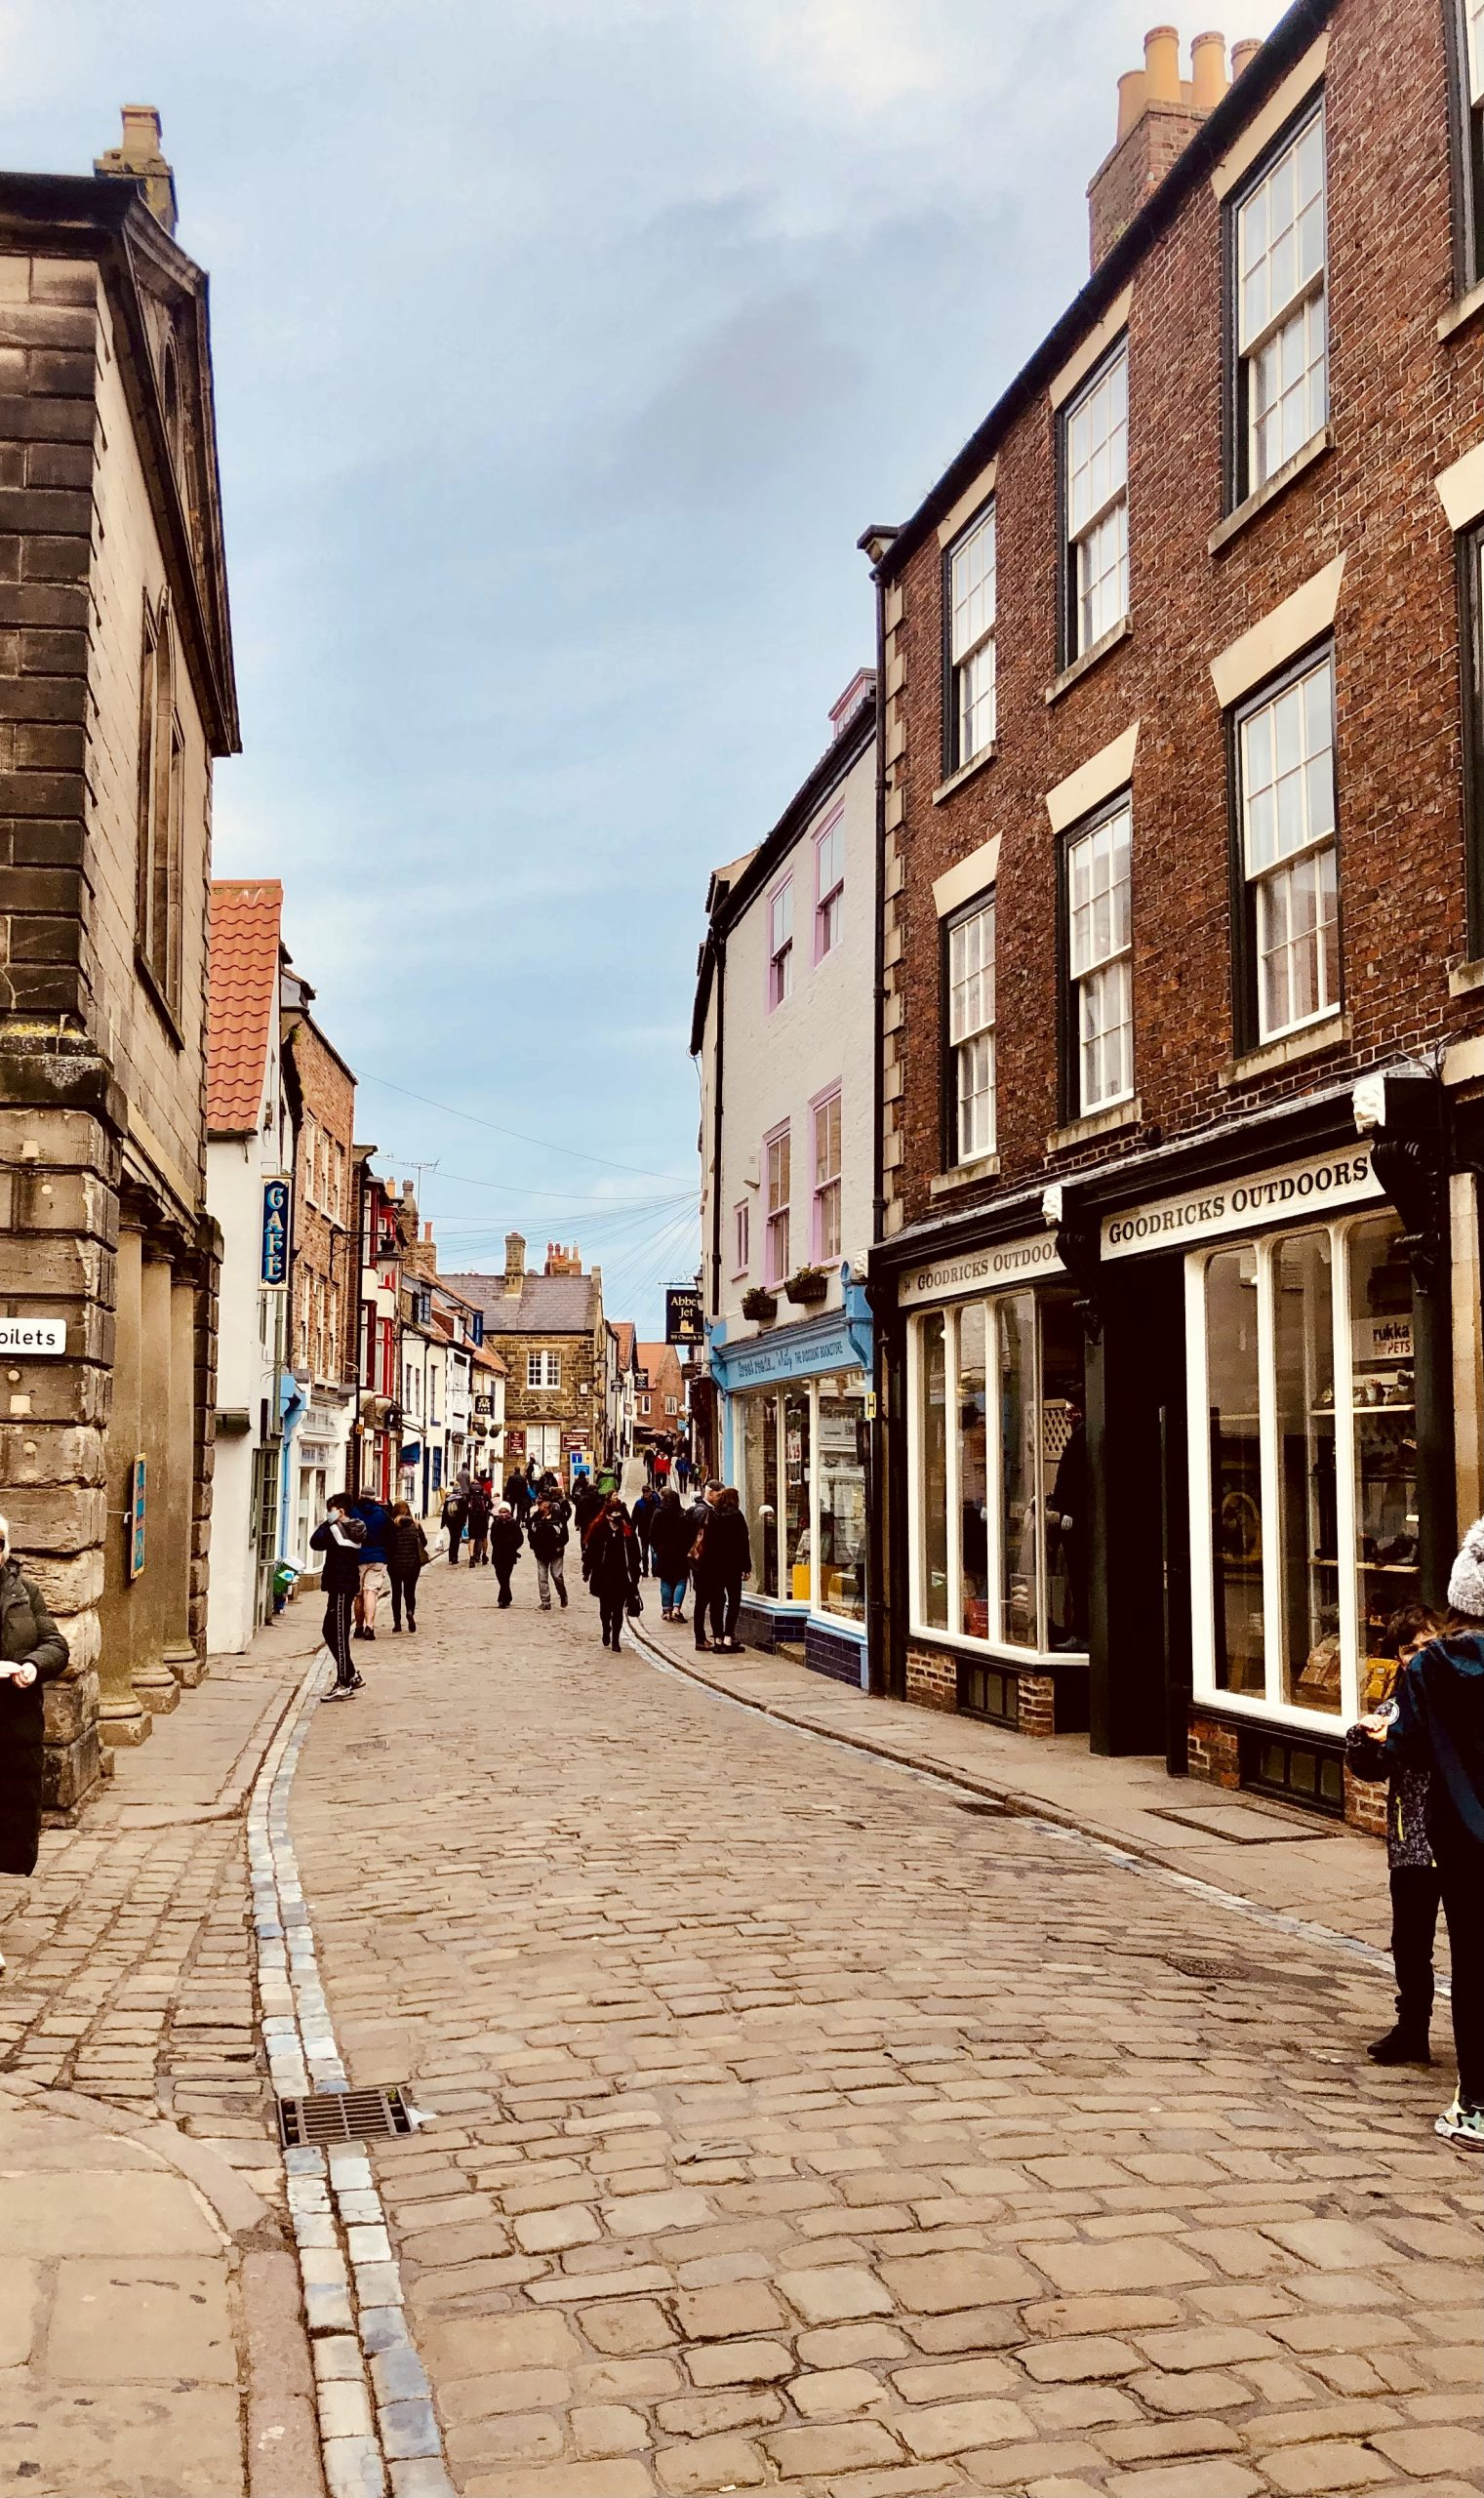 Shopping on Church Street in Whitby